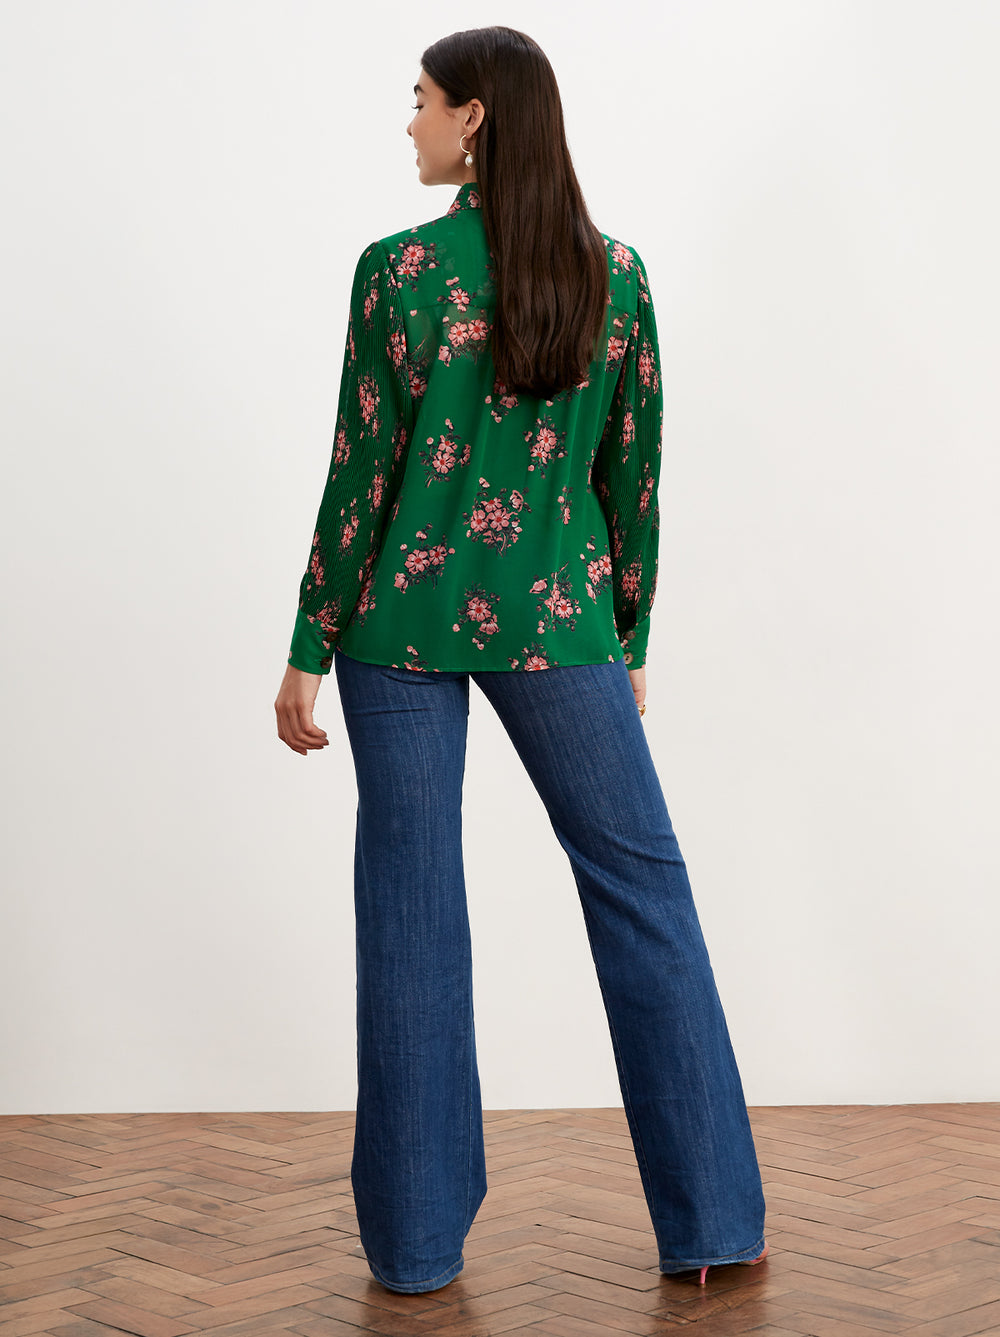 Sonya Green Floral Print Pleated Sleeve Blouse by KITRI Studio